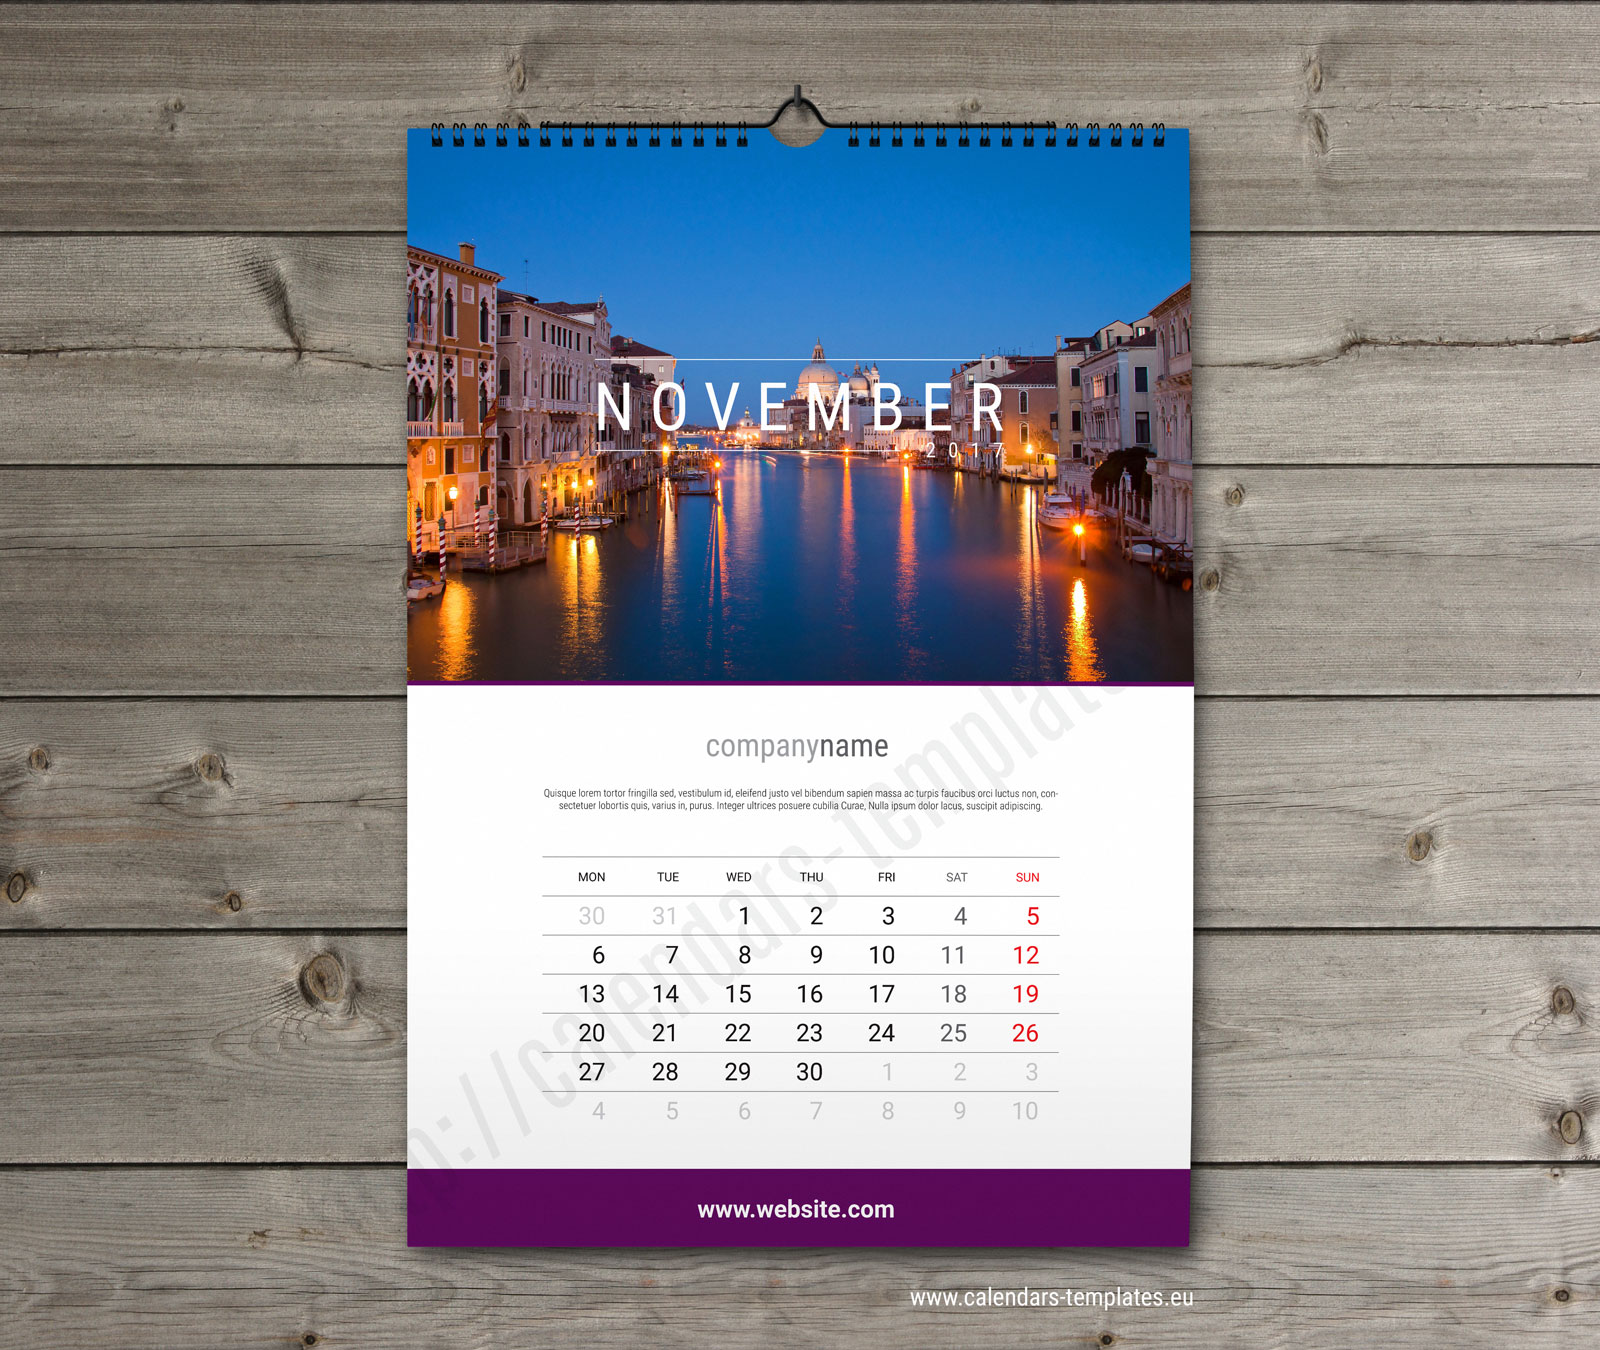 Amazing Sample Designs Baset On This Calendar Template  Calendar Sample Design